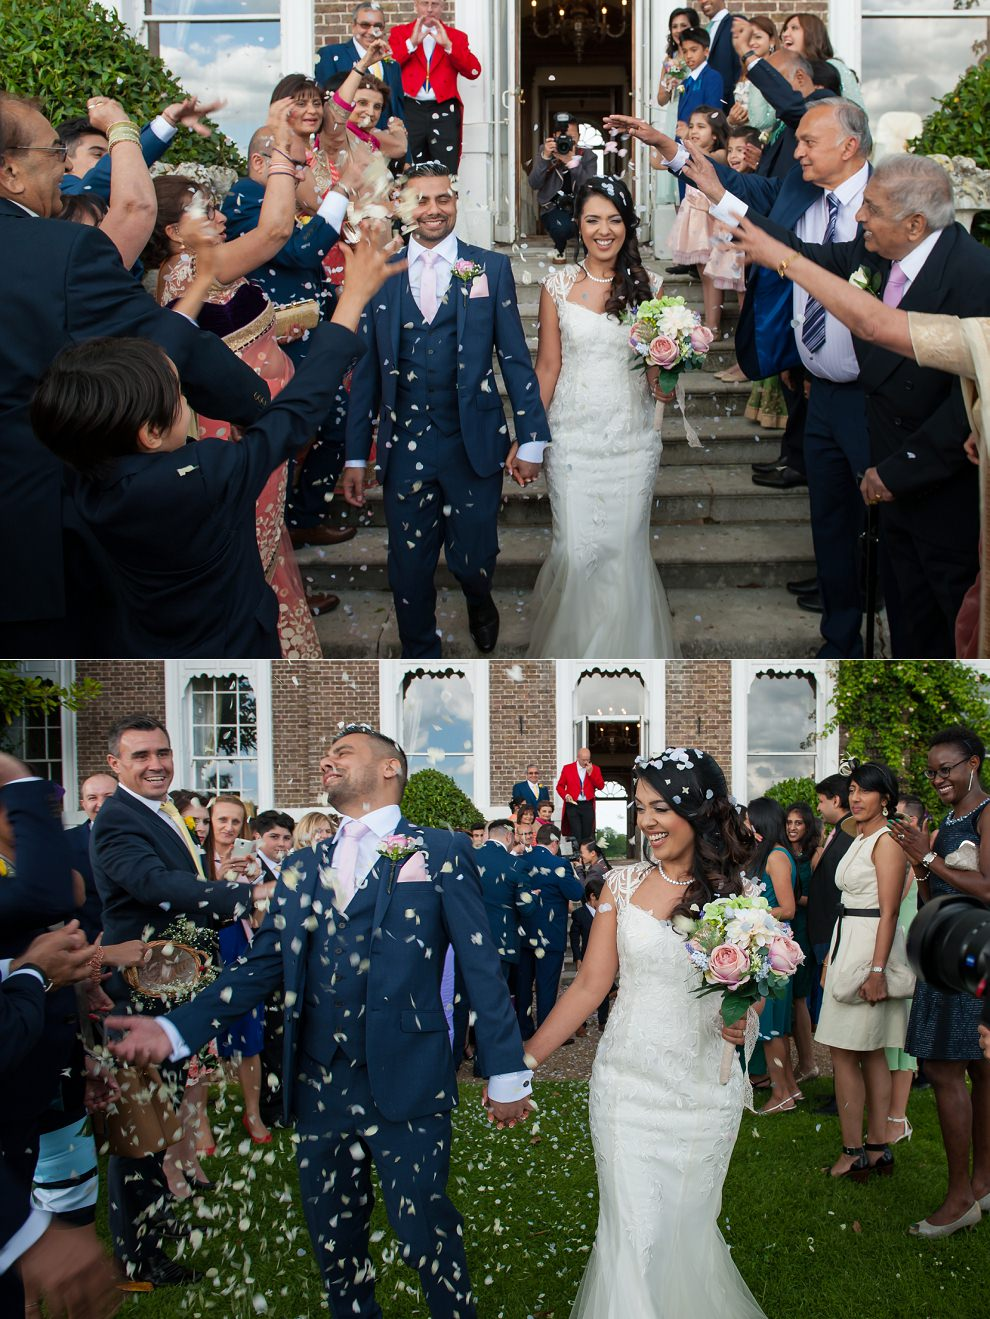 Boreham-House-Wedding-Essex-Rupal Dipen-39